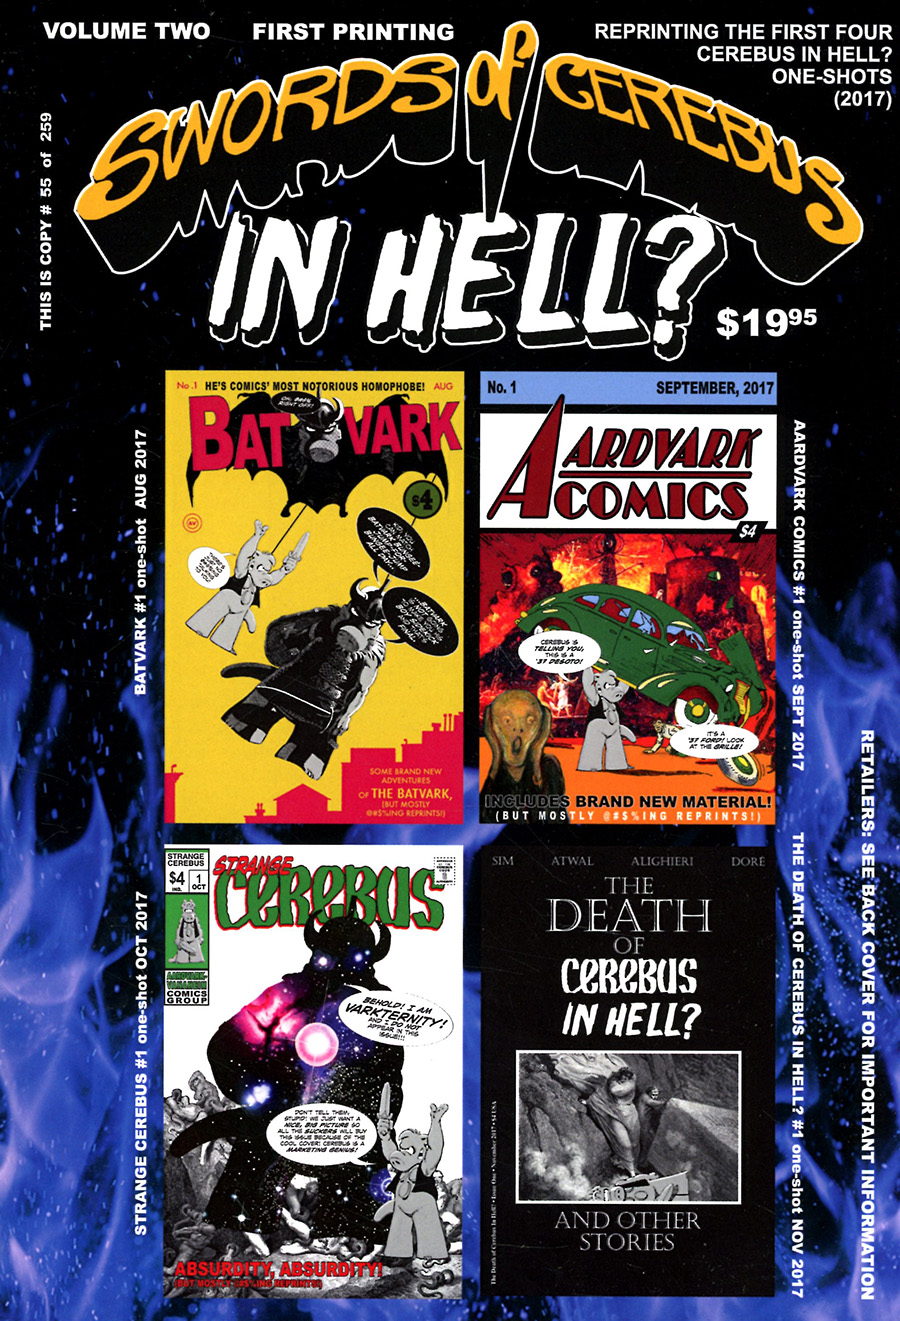 Swords Of Cerebus In Hell Vol 2 TP